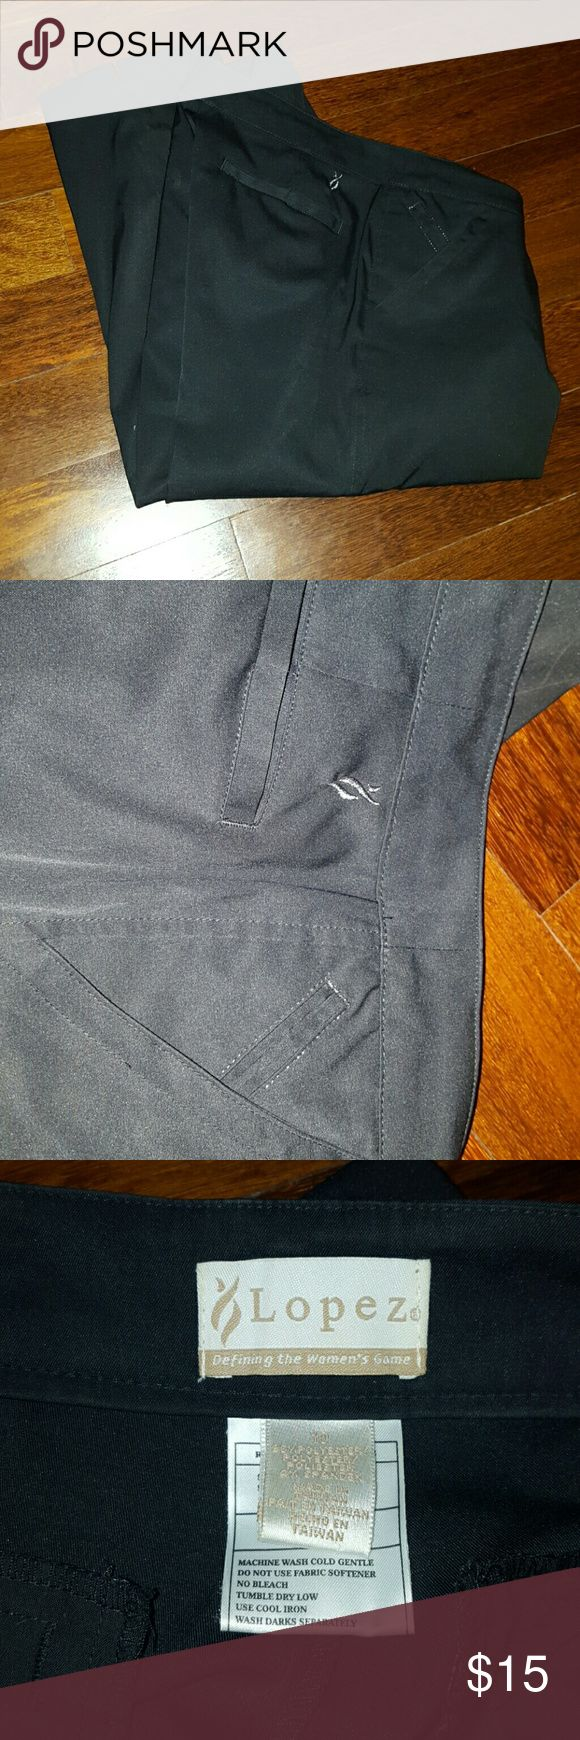 Golf capris Lopez golf capris, moderate fit, not skinny style. Great quality. Professional golf clothing brand lopez Pants Capris